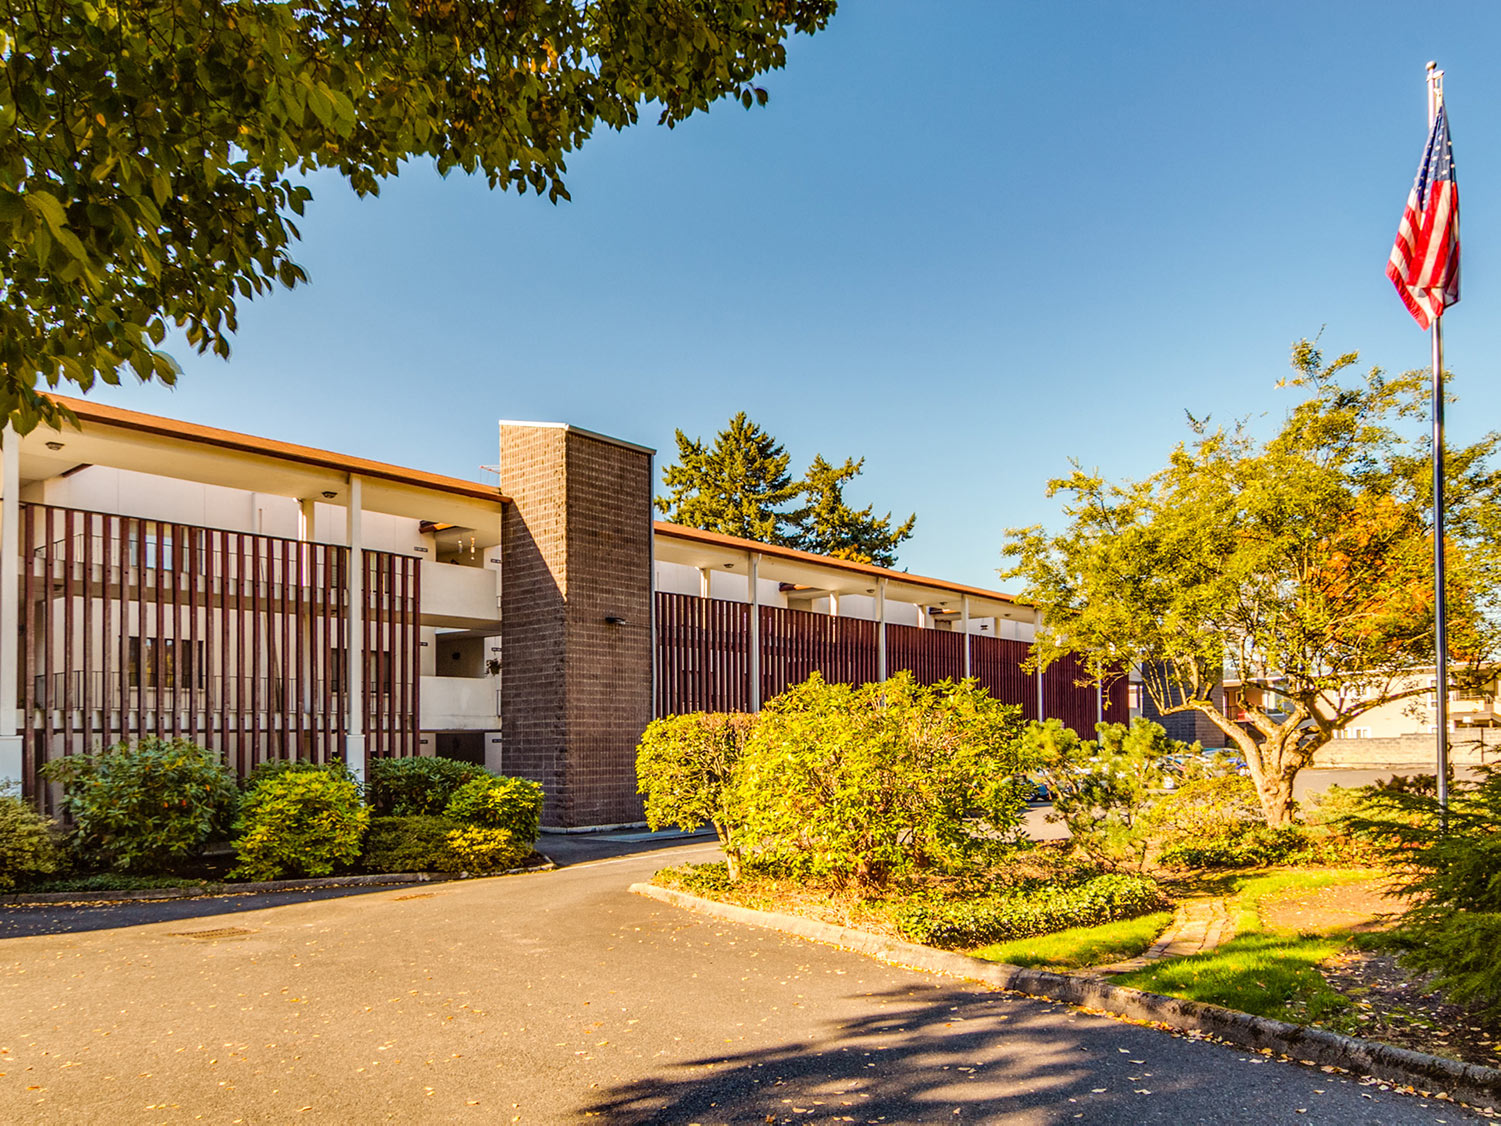 The Quayside condos are set in the heart of the Sellwood-Moreland neighborhood